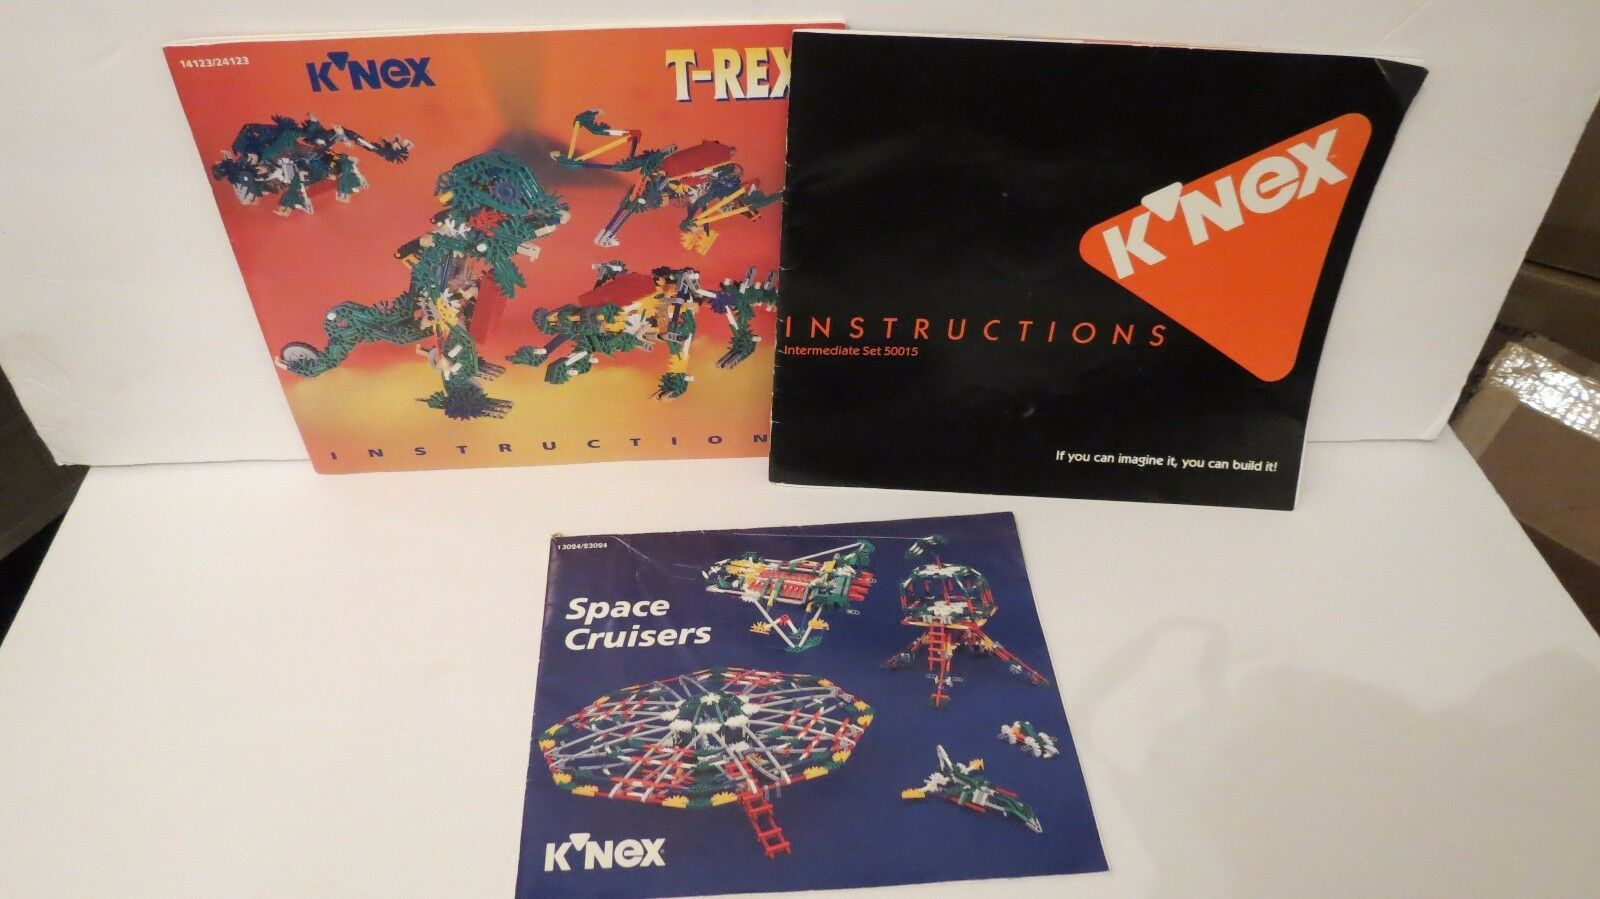 KNEX LOT   2 PLASTIC CARRY CARRY CARRY CASES  3 INSTRUCTIONAL MANUALS  7 POUNDS OF PIECES 1351a1